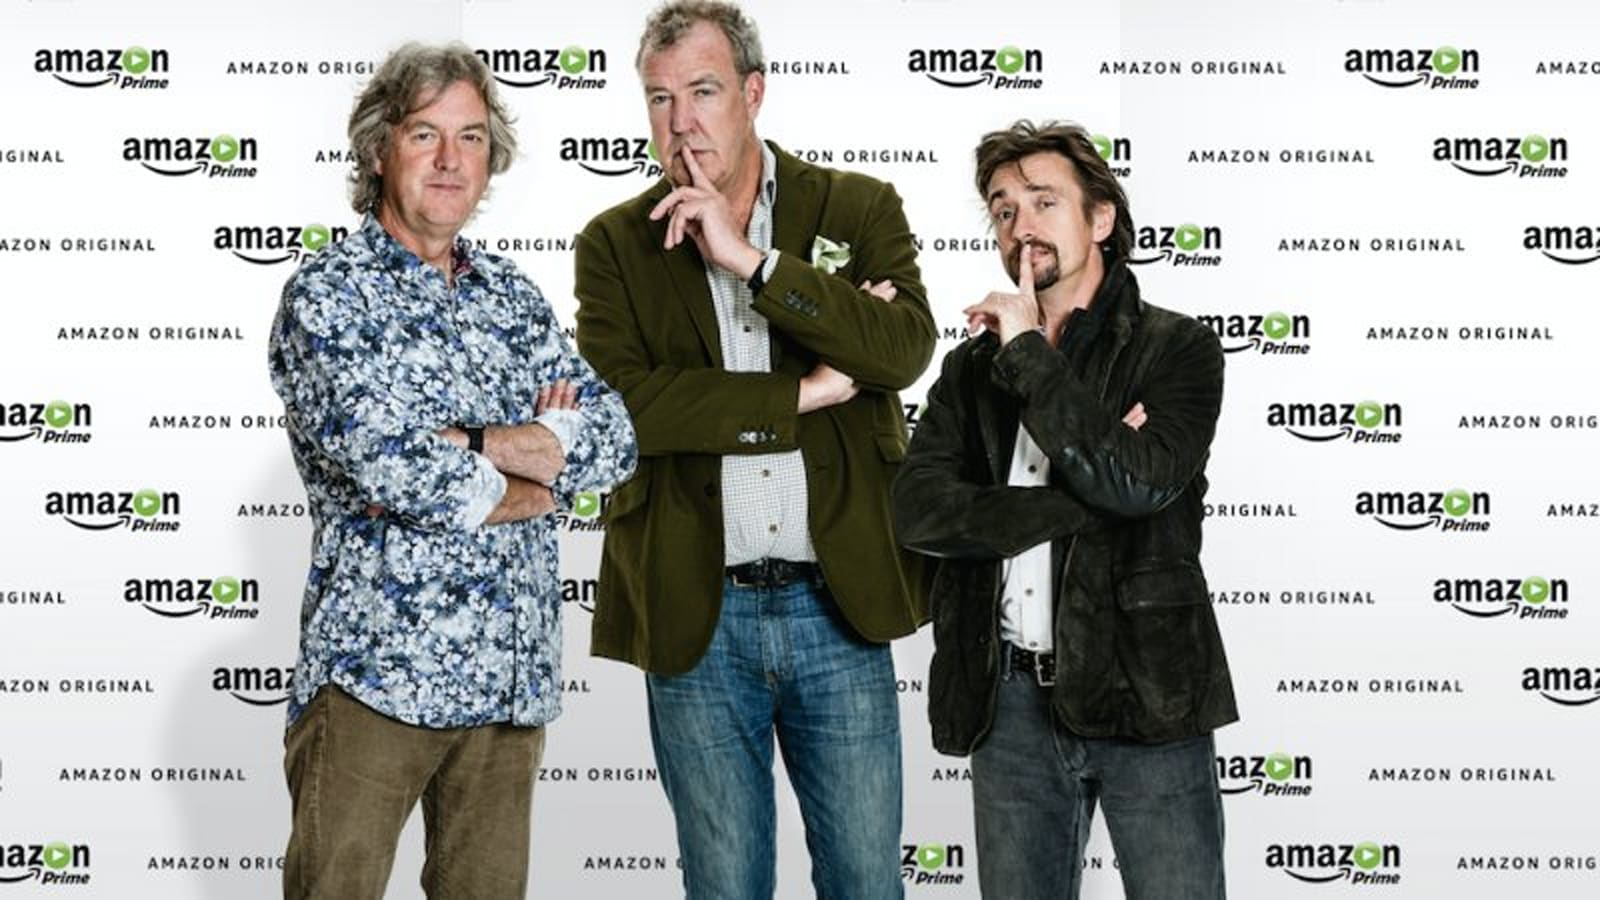 Amazons The Grand Tour Car Show Launches November Th - Car show on amazon